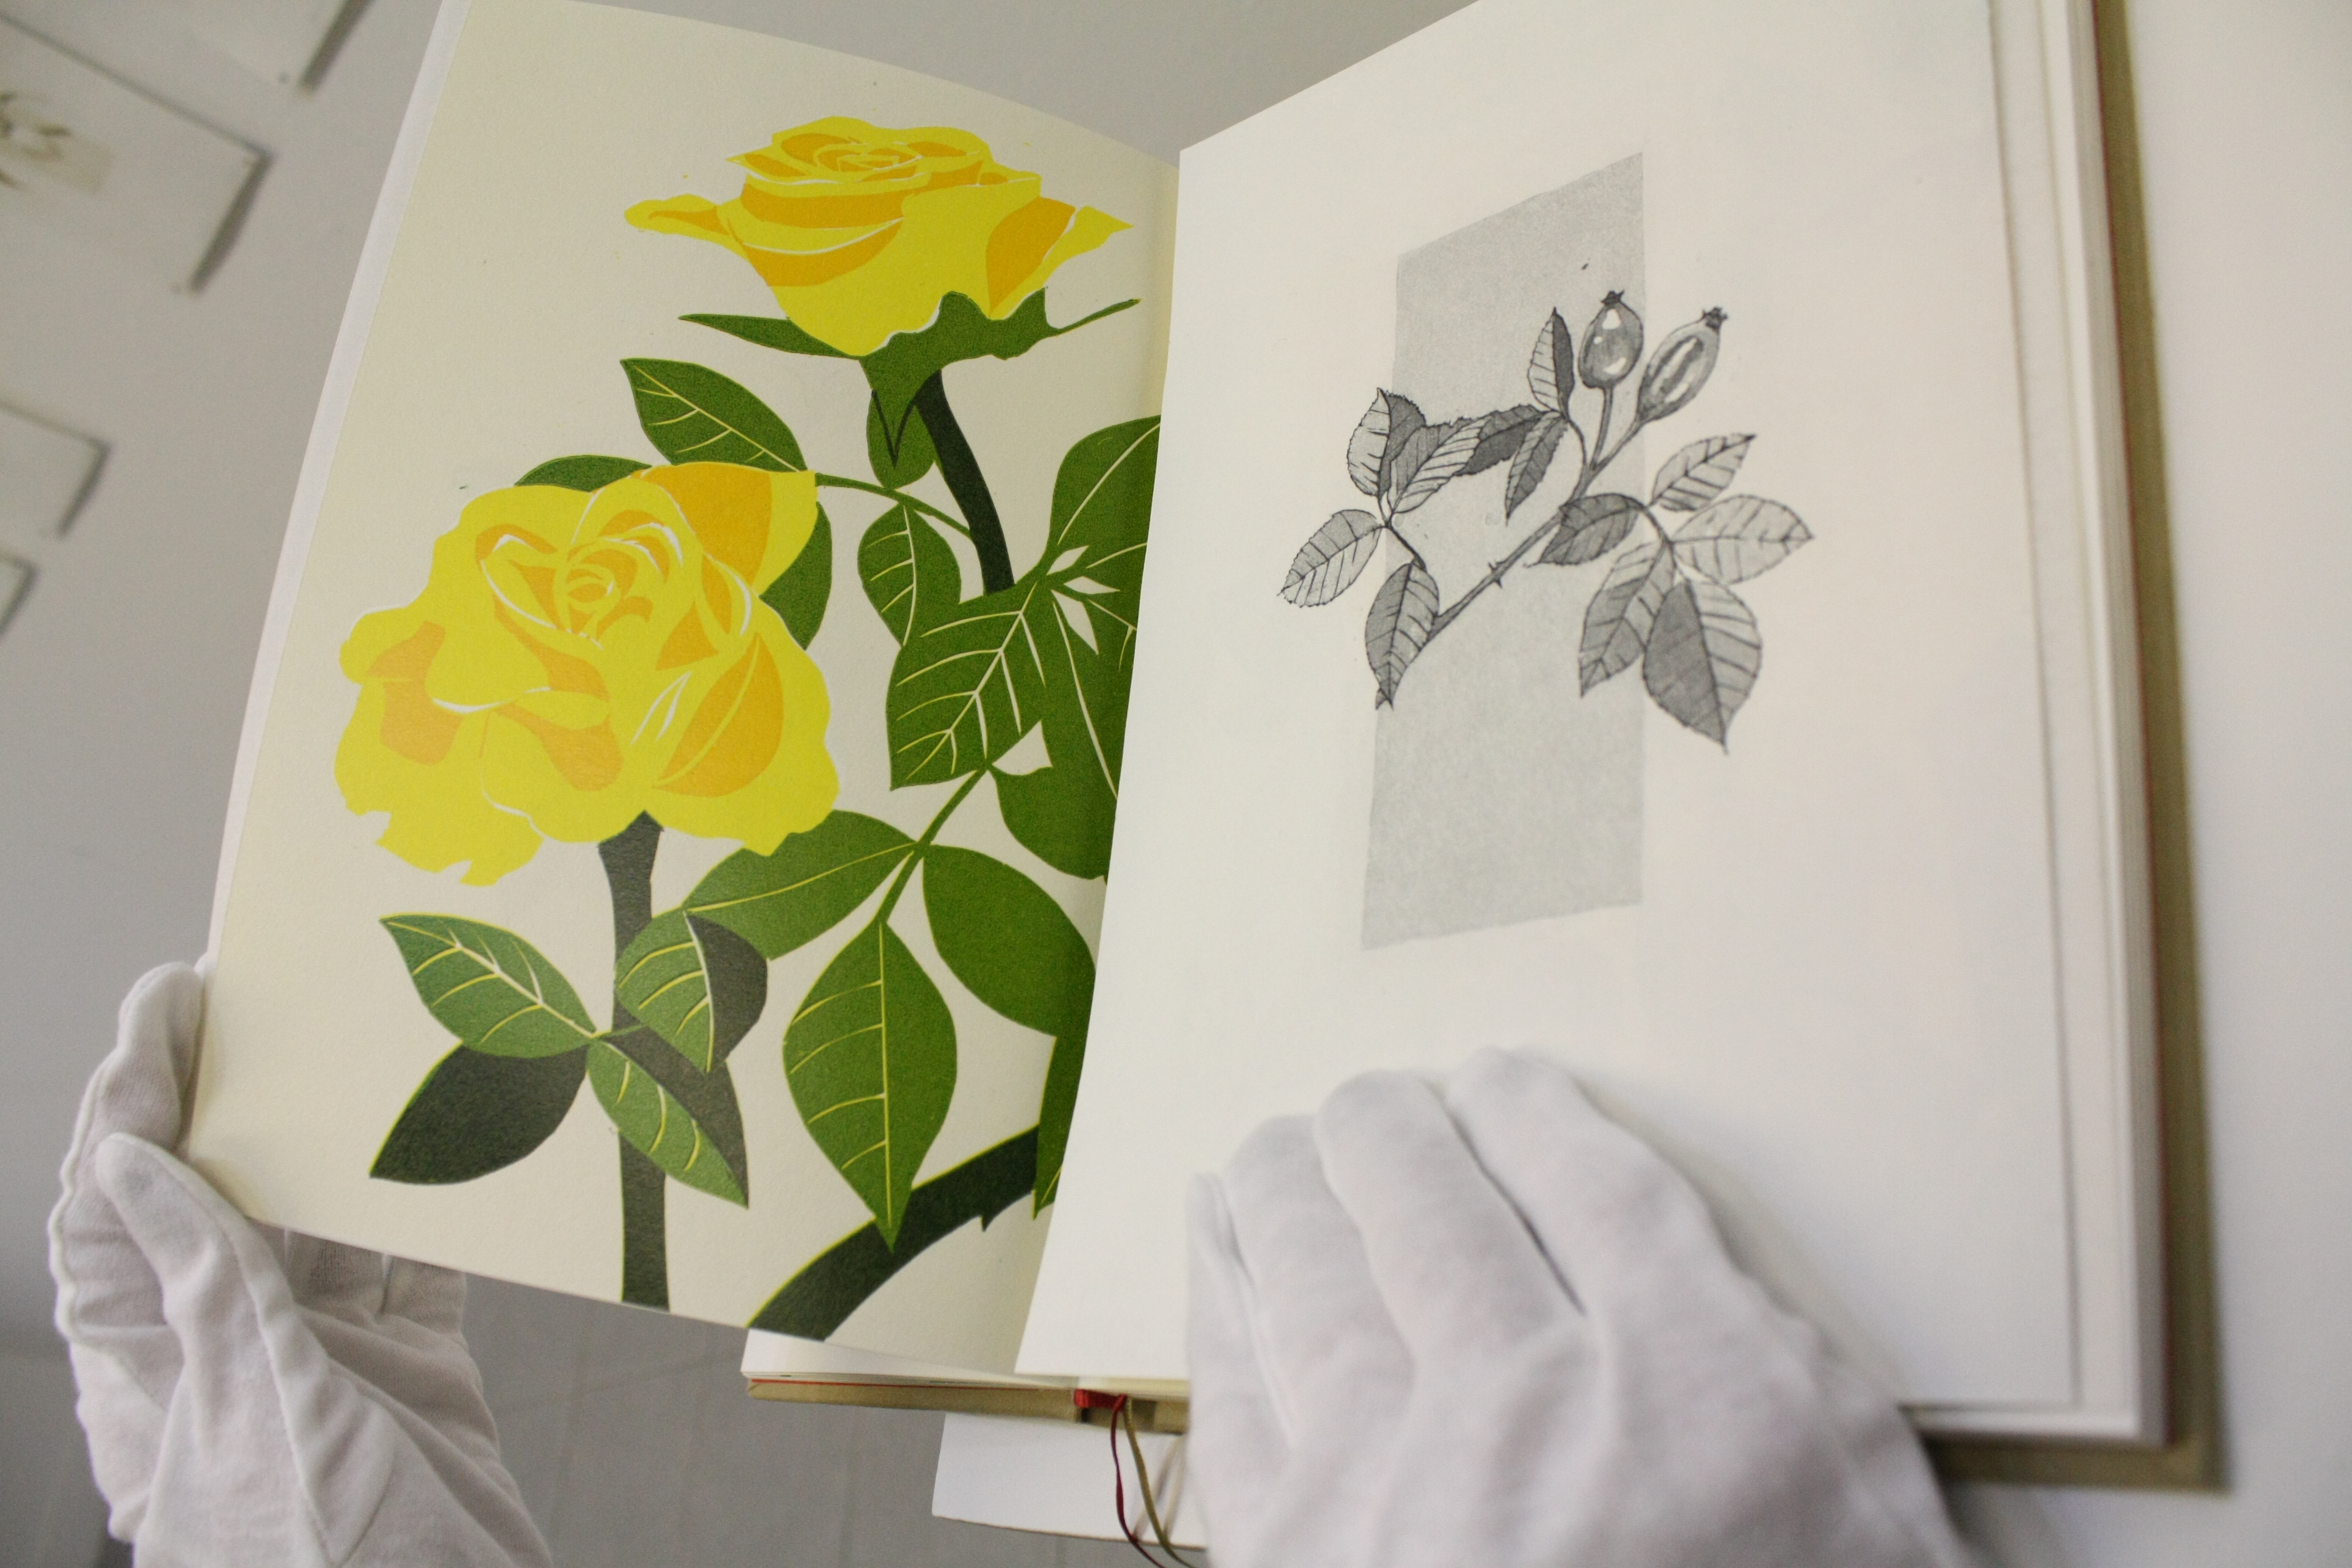 Etching 'Monday I' opens to three page linocut